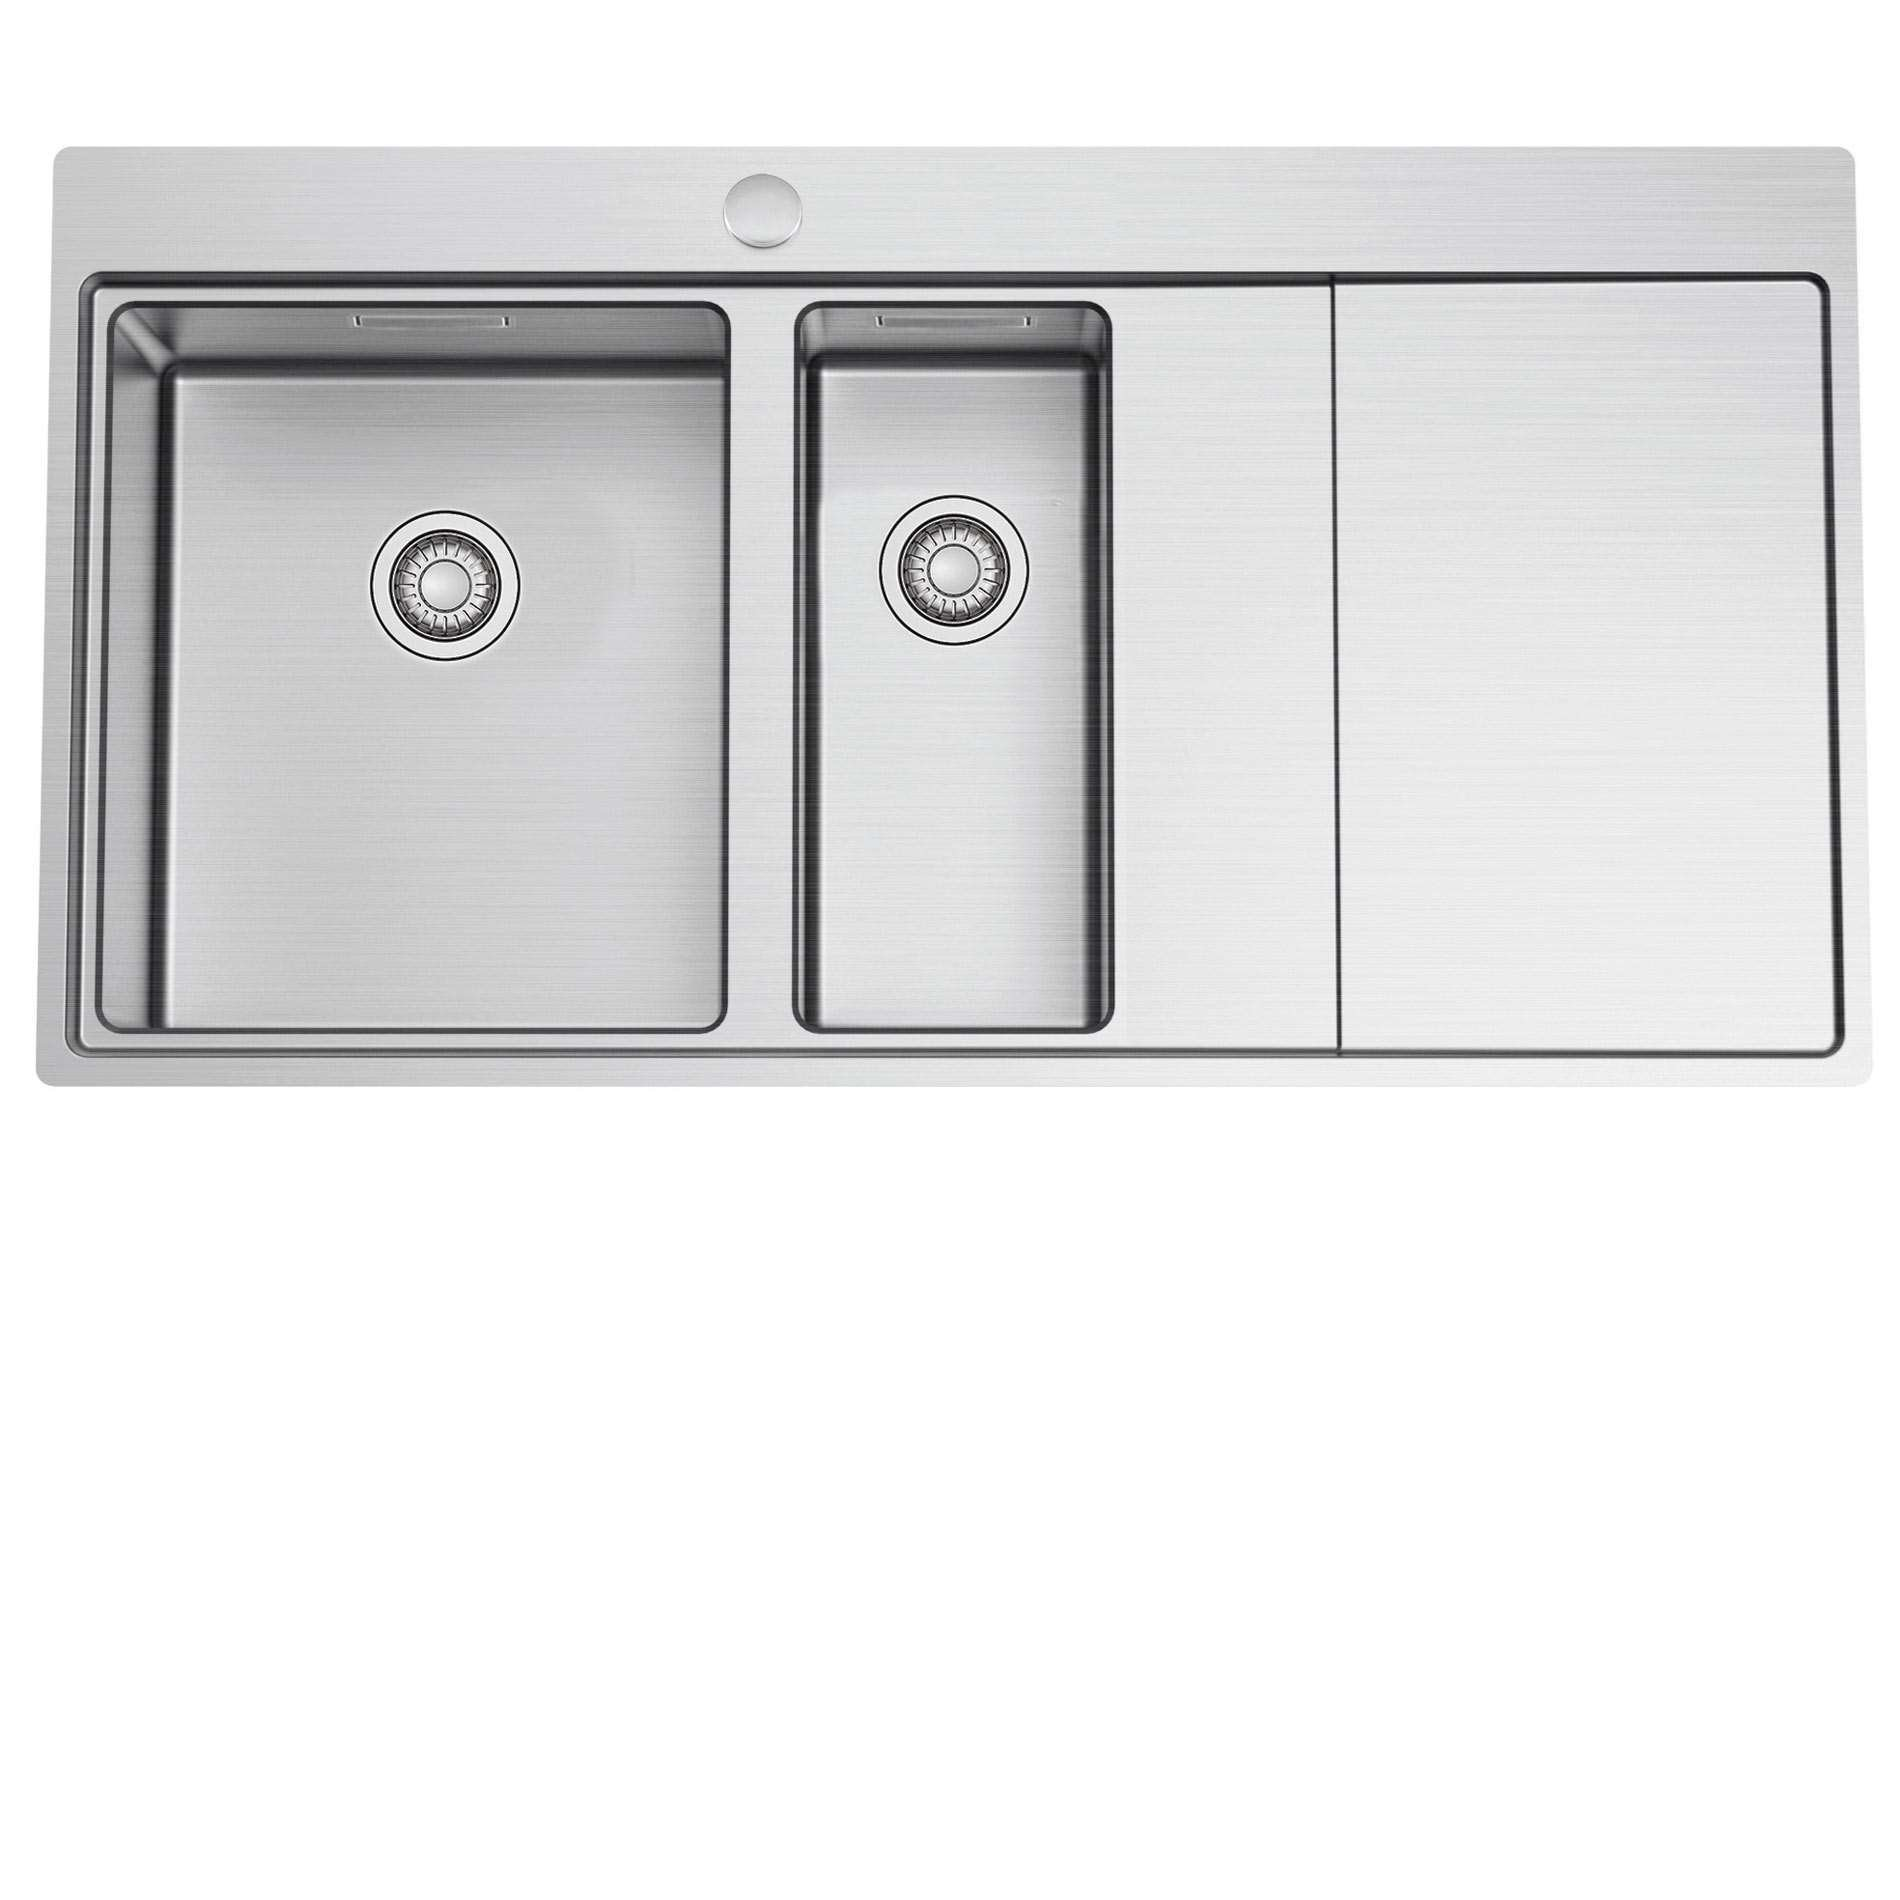 Stainless Steel Sinks Manufacturer In China Kdm